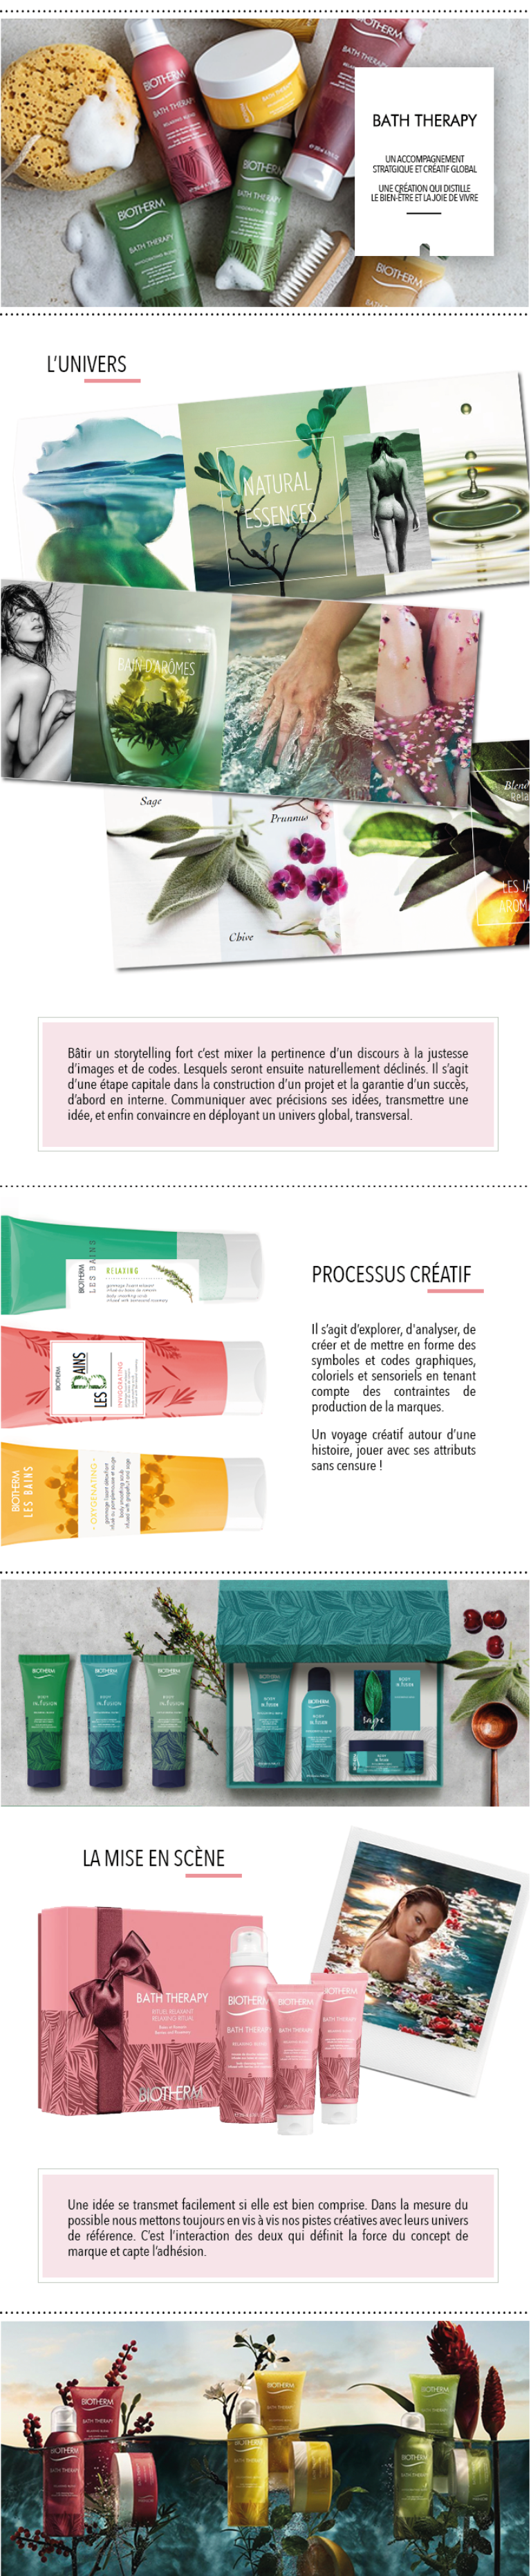 M-NEO-BIOTHERM-BATH-THERAPY-MAILING7